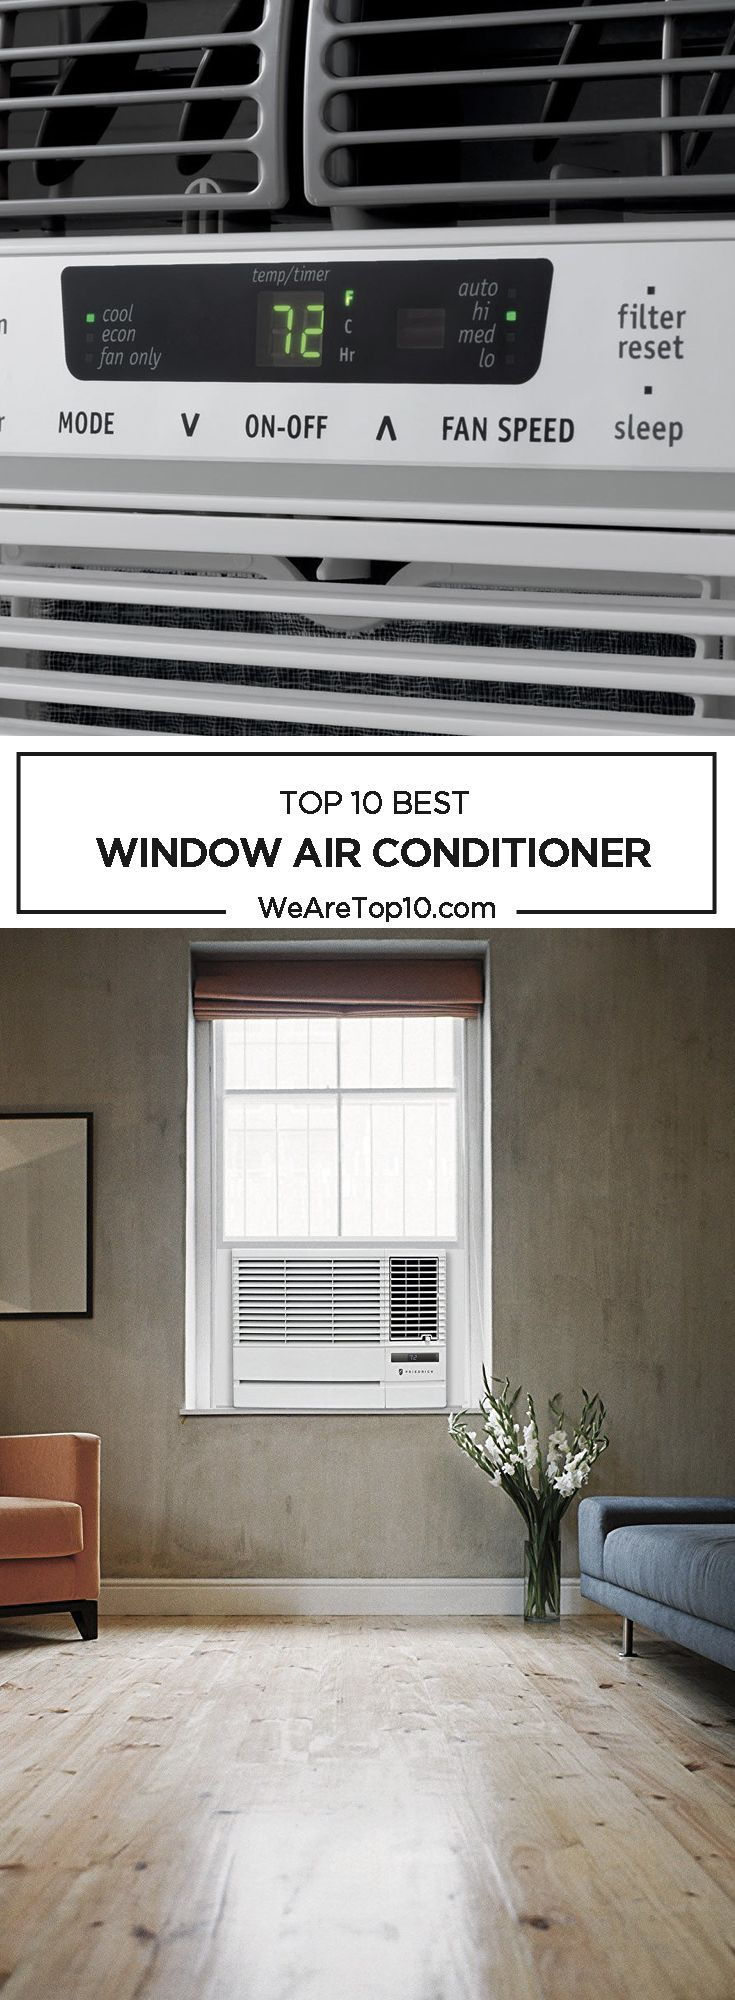 Window Air conditioners are available in different prices with various features that are best to beat the heat. In this review, you will get to know about the Top 10 Best Window Air Conditioner.